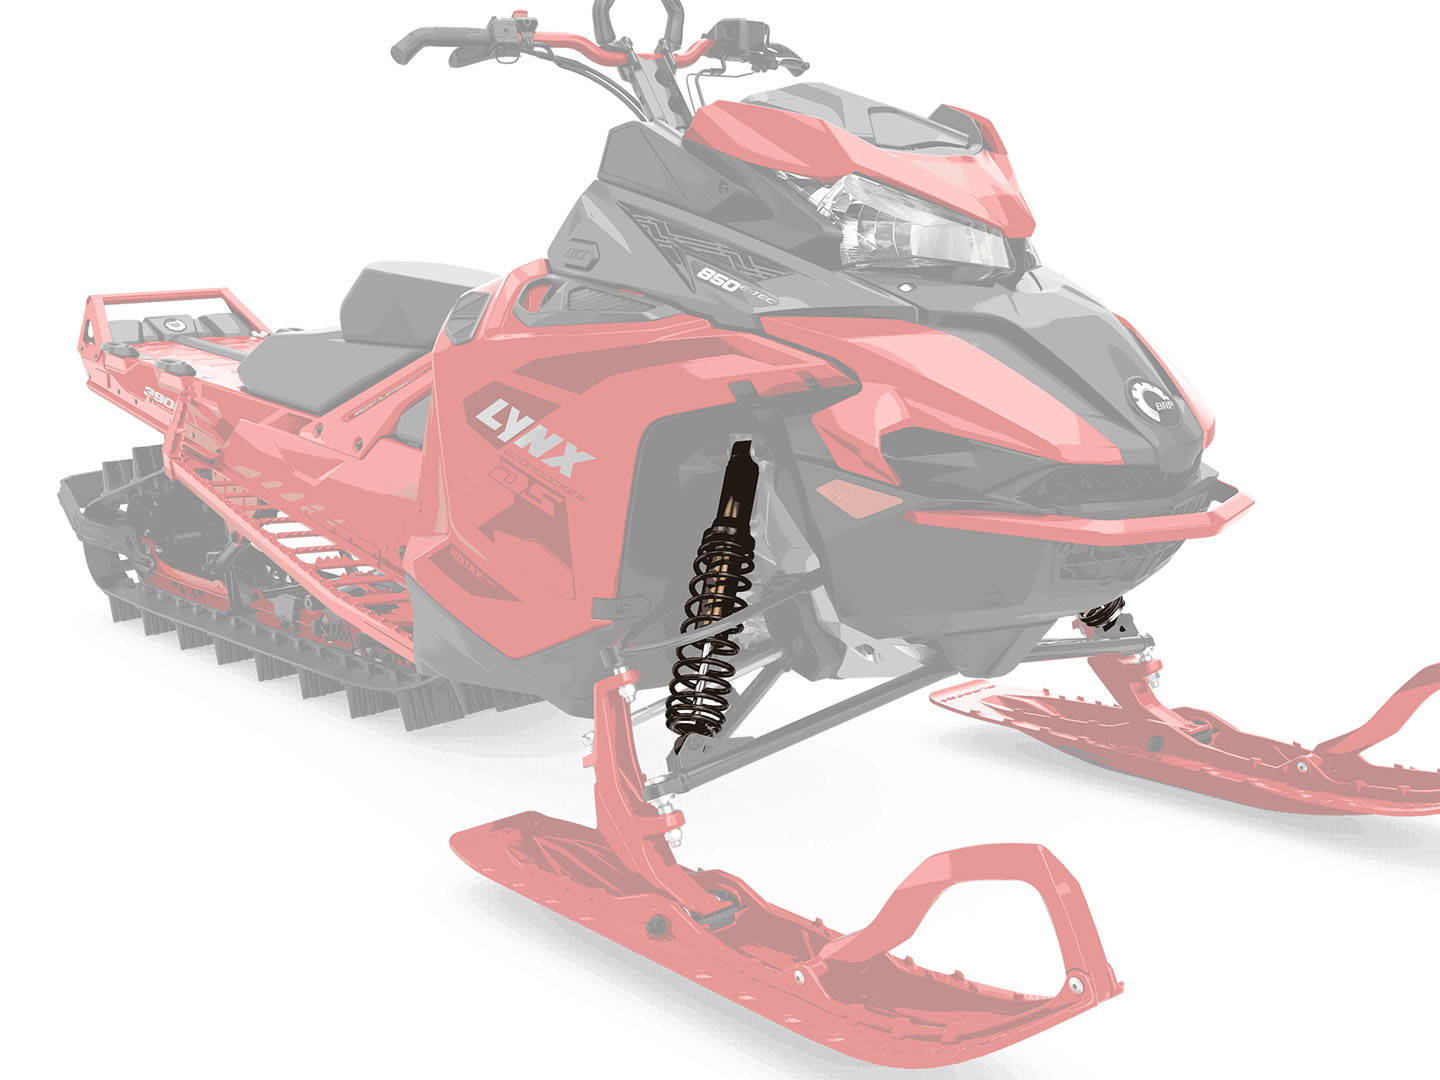 CONTROL IN DEEP SNOW: KYB Kashima shock absorbers - The Kashima coating of KYB shock absorbers on the BoonDocker DS model reduces the internal friction of the shock absorbers, improving the sensitivity of the suspension movement and the handling of the snowmobile. - Photo 10